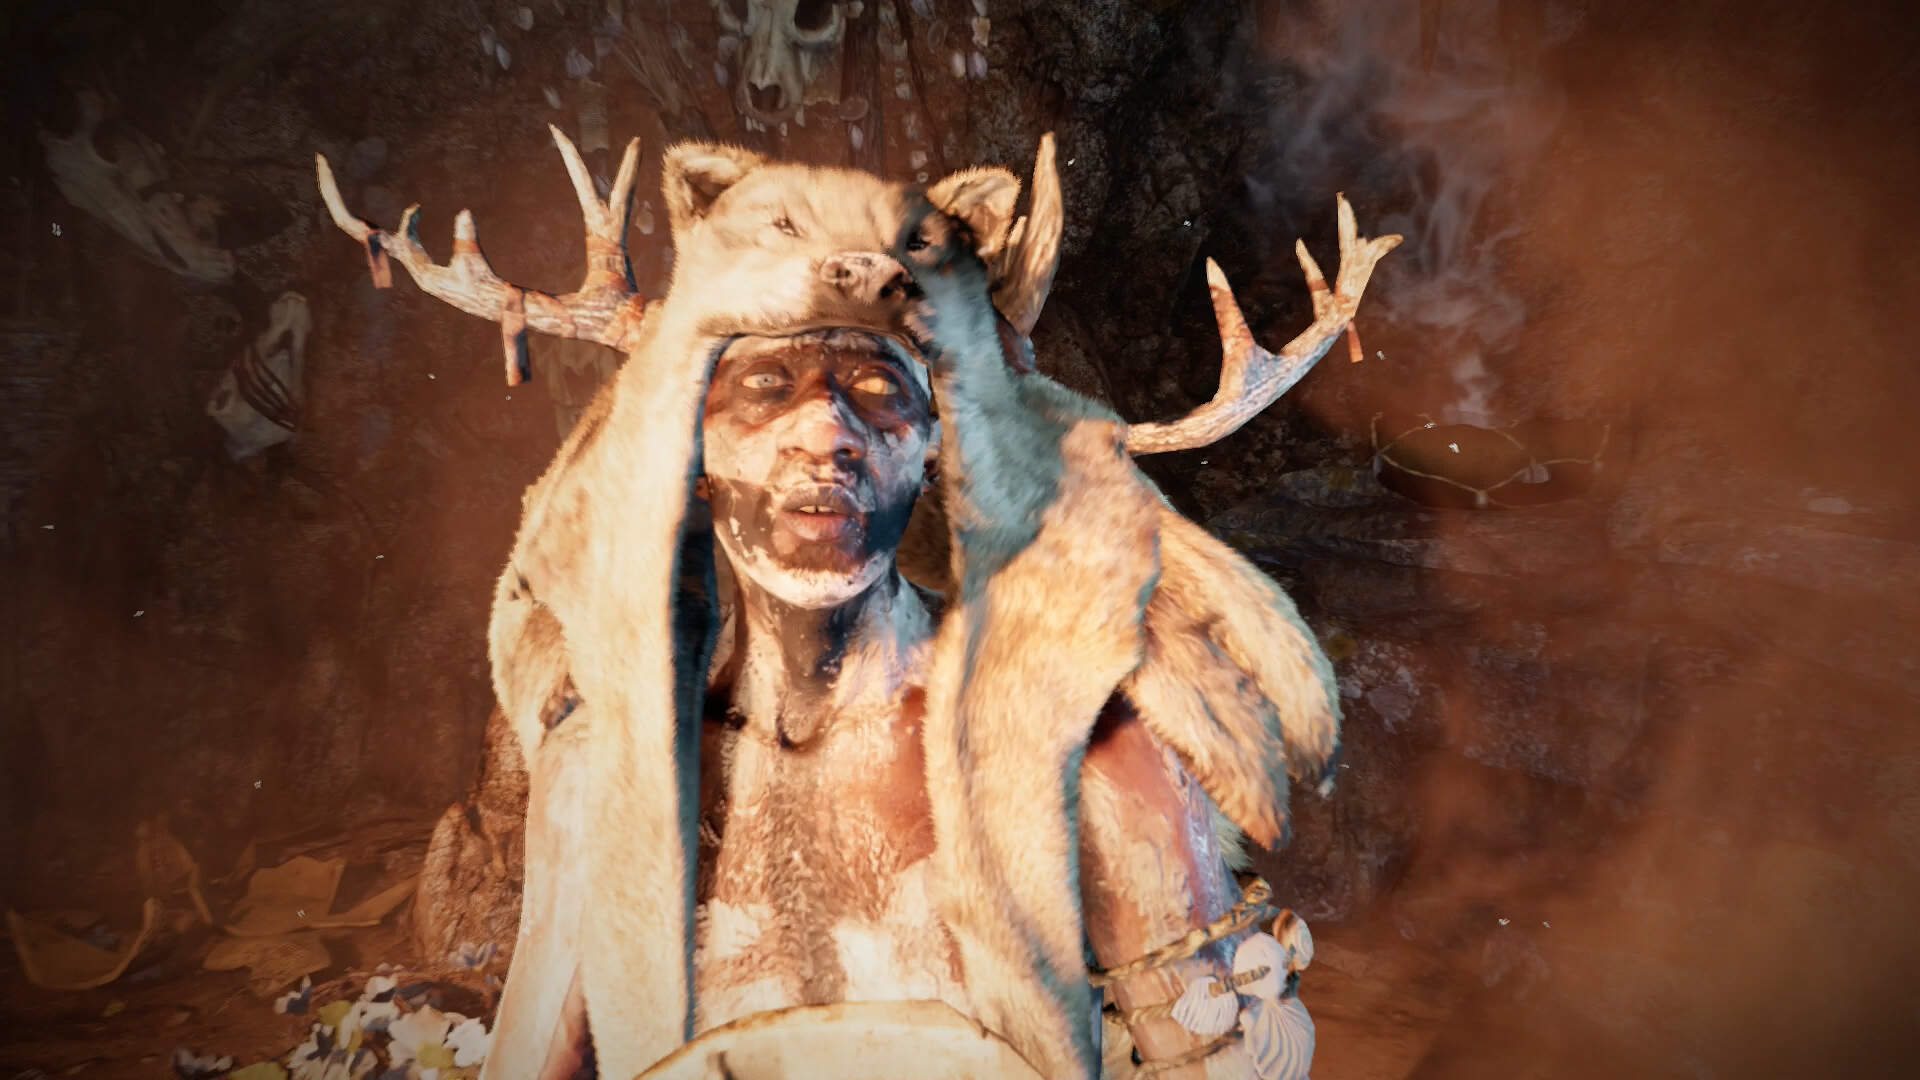 Far Cry Primal Tips - Crafting and Skills